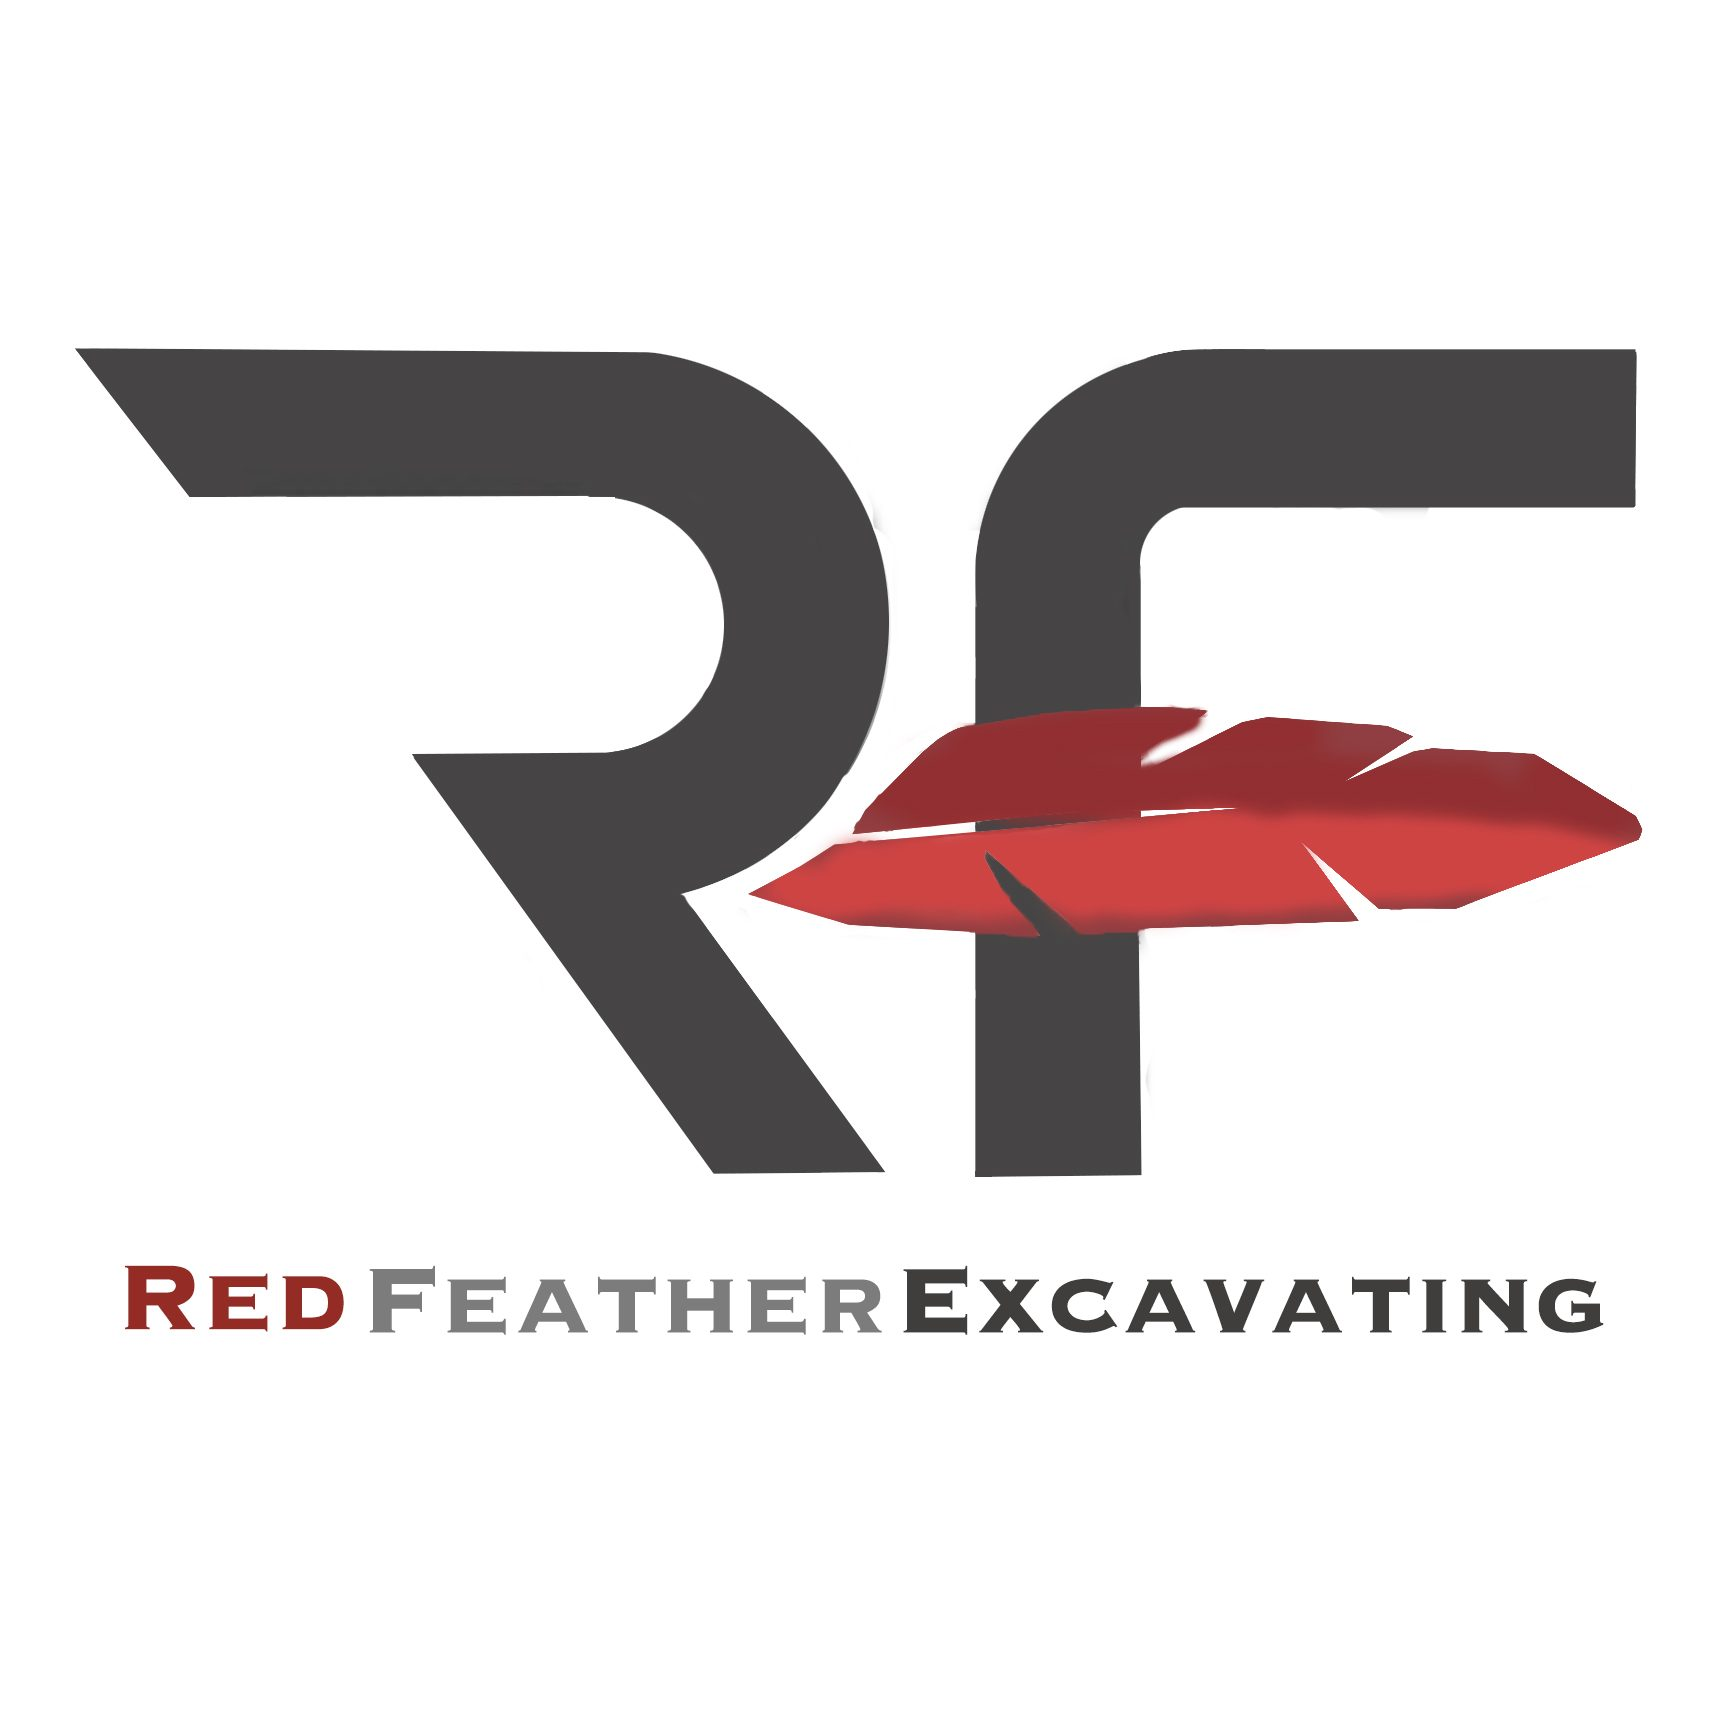 Red Feather Excavating